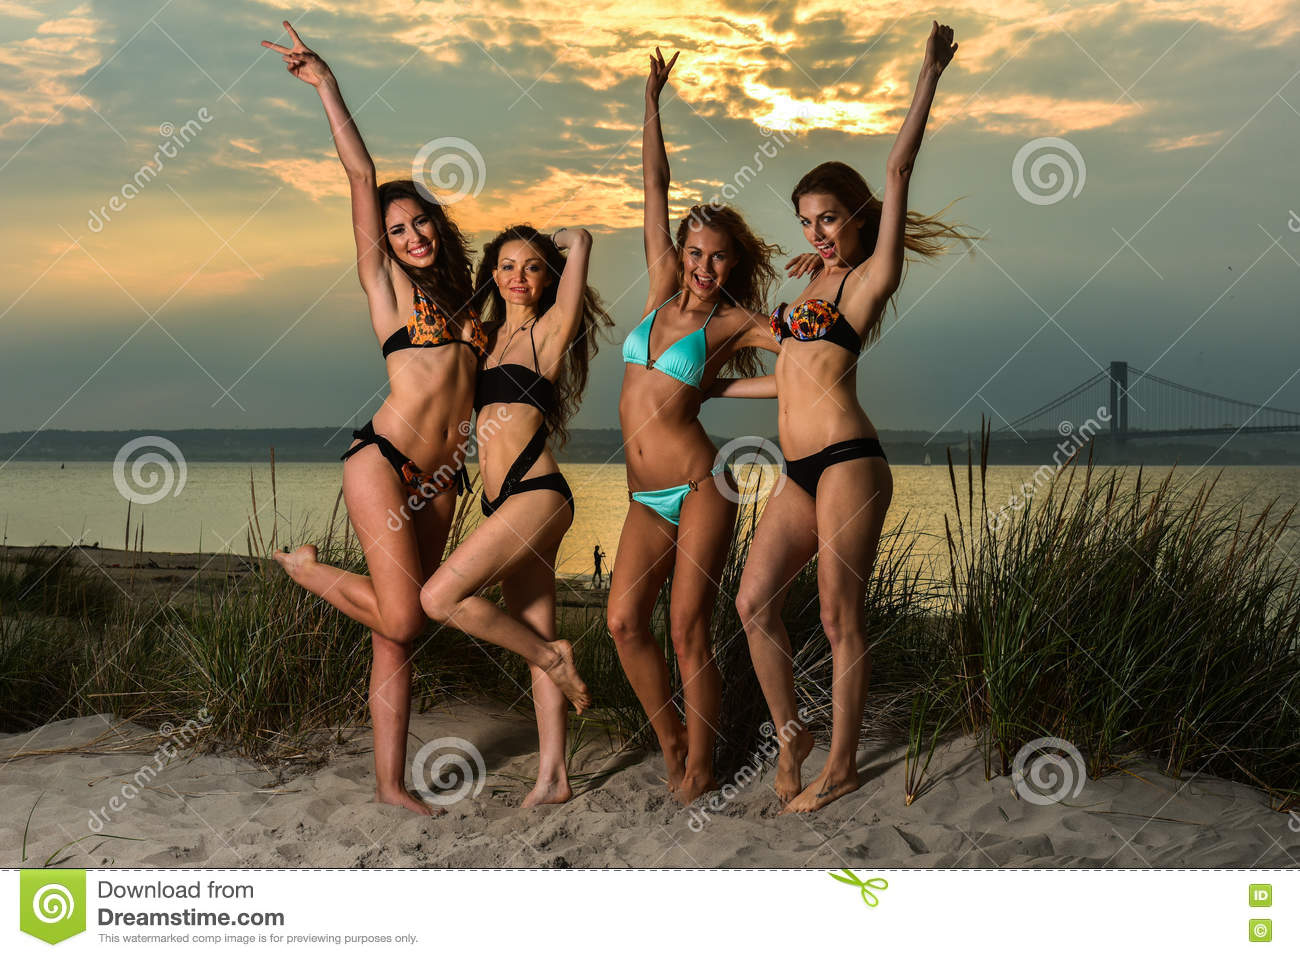 sunset beach girls Sunset beach girl wallpaper #17440 free online wallpapers for you pc wallpaper, computer, gadget, mobile phone, screensaver and more 1440x900, added on , tagged : #girl #sunset beach #wallpaper at wallpaperlepi.